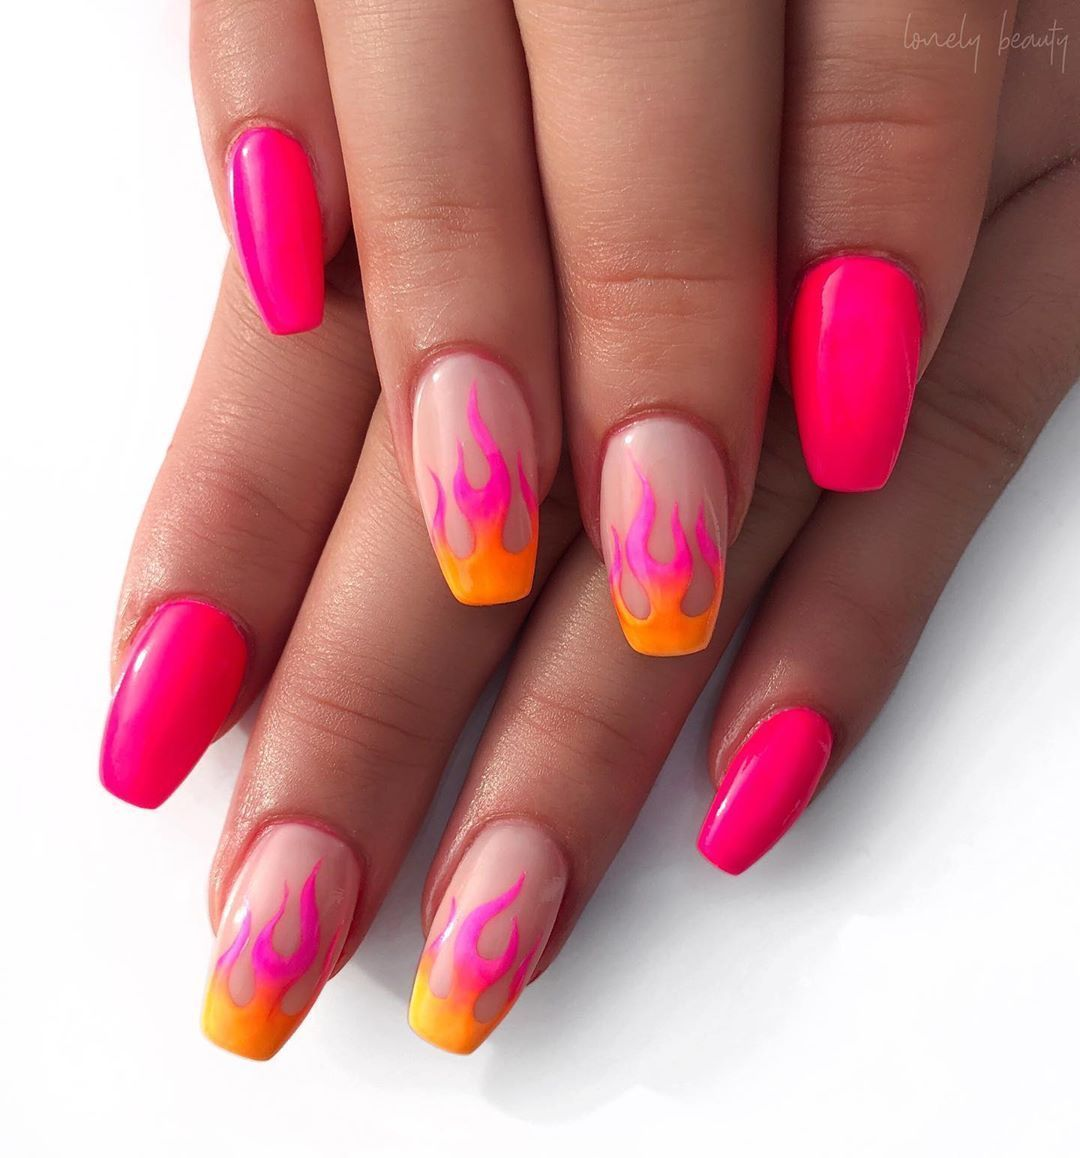 Neon Nails Art Neon Nail Designs For Light And Dark Skin In 2020 Neon Pink Nails Neon Nail Designs Pink Nails